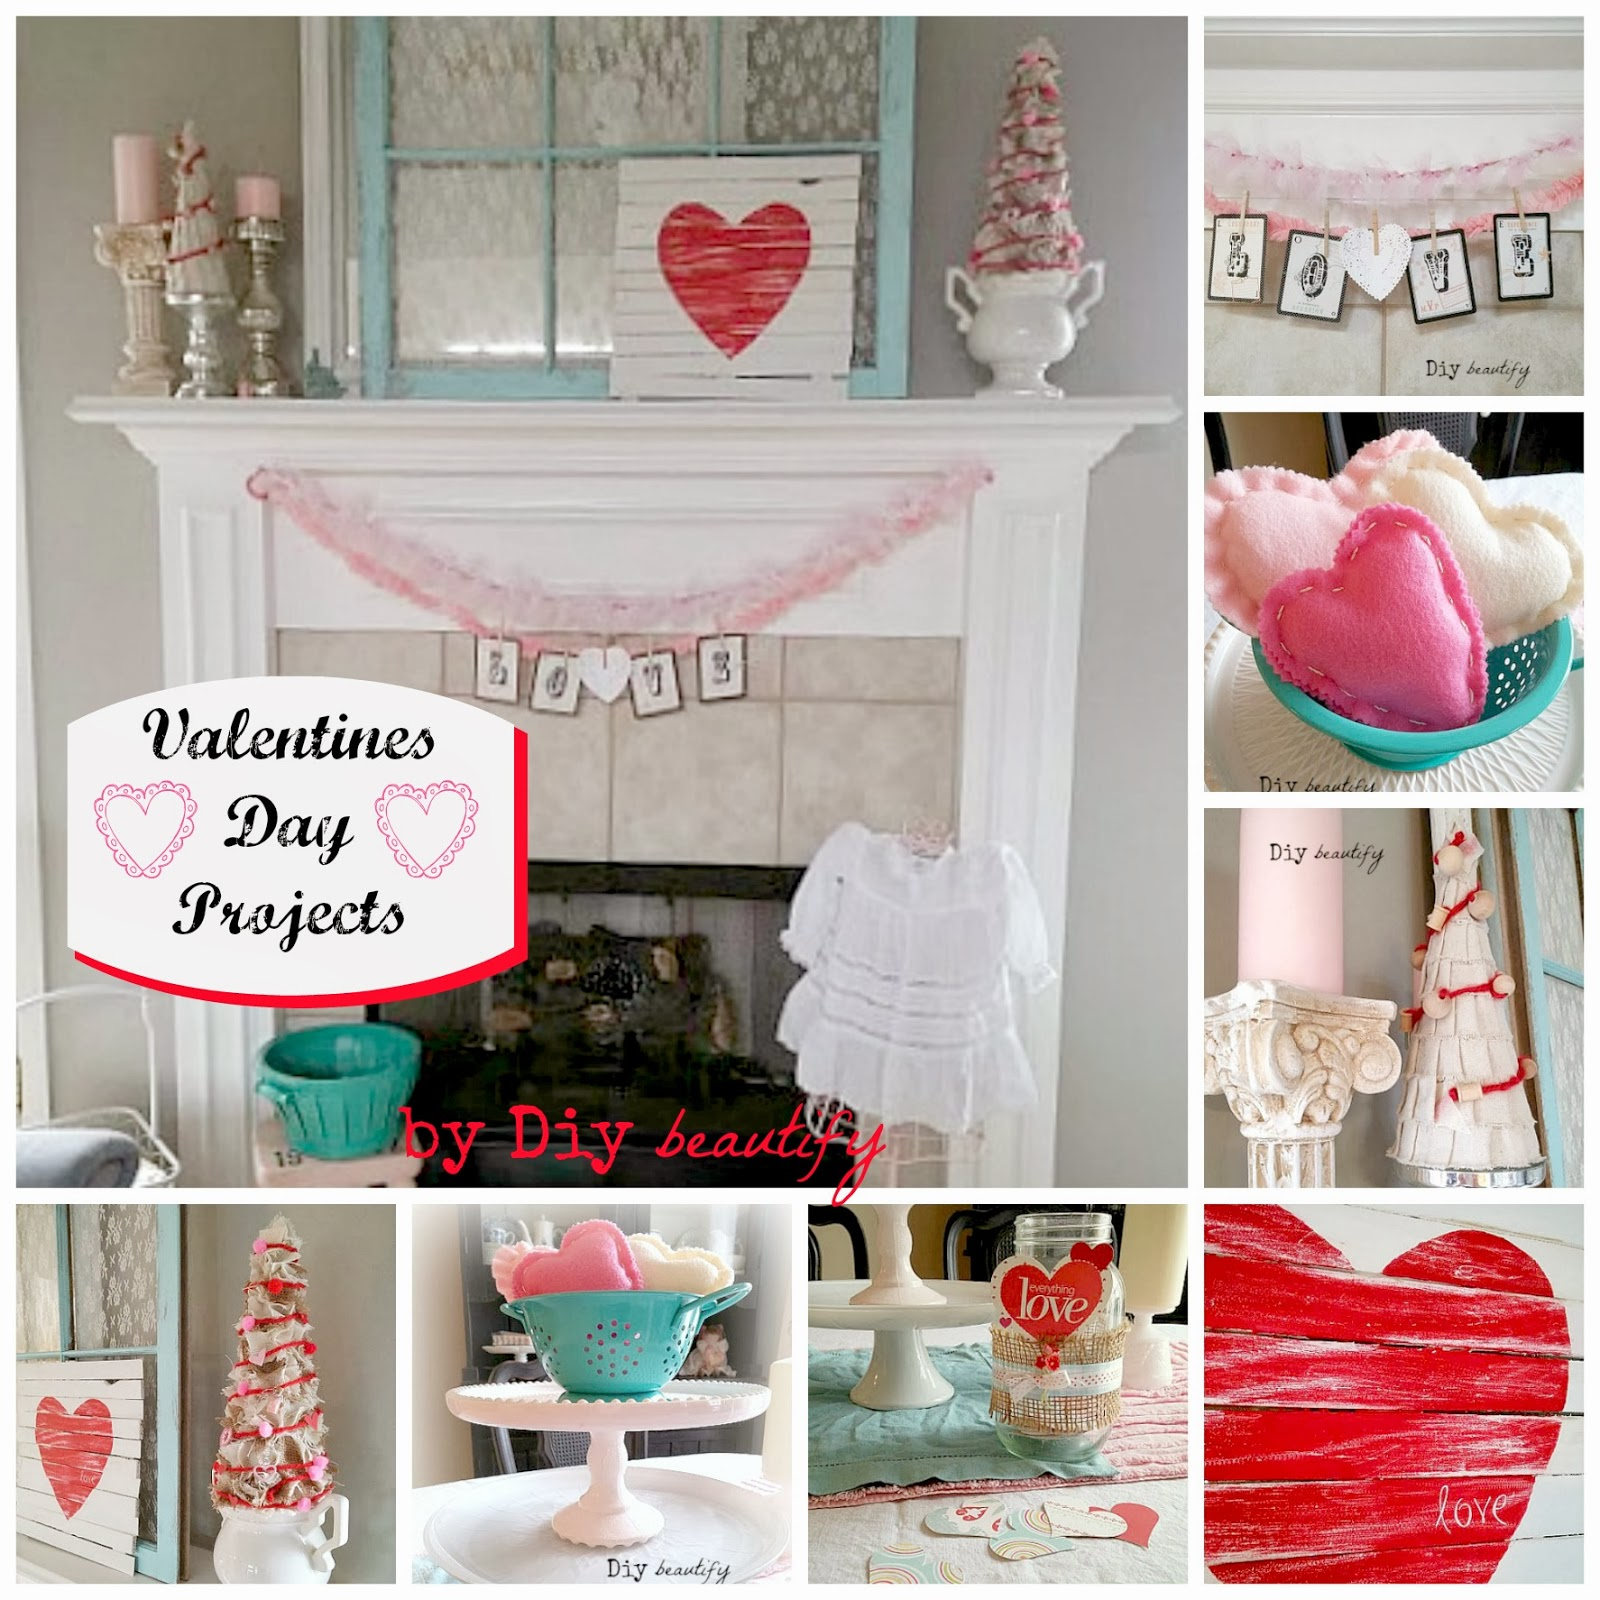 Valentines Decor and 2014 Projects www.diybeautify.com